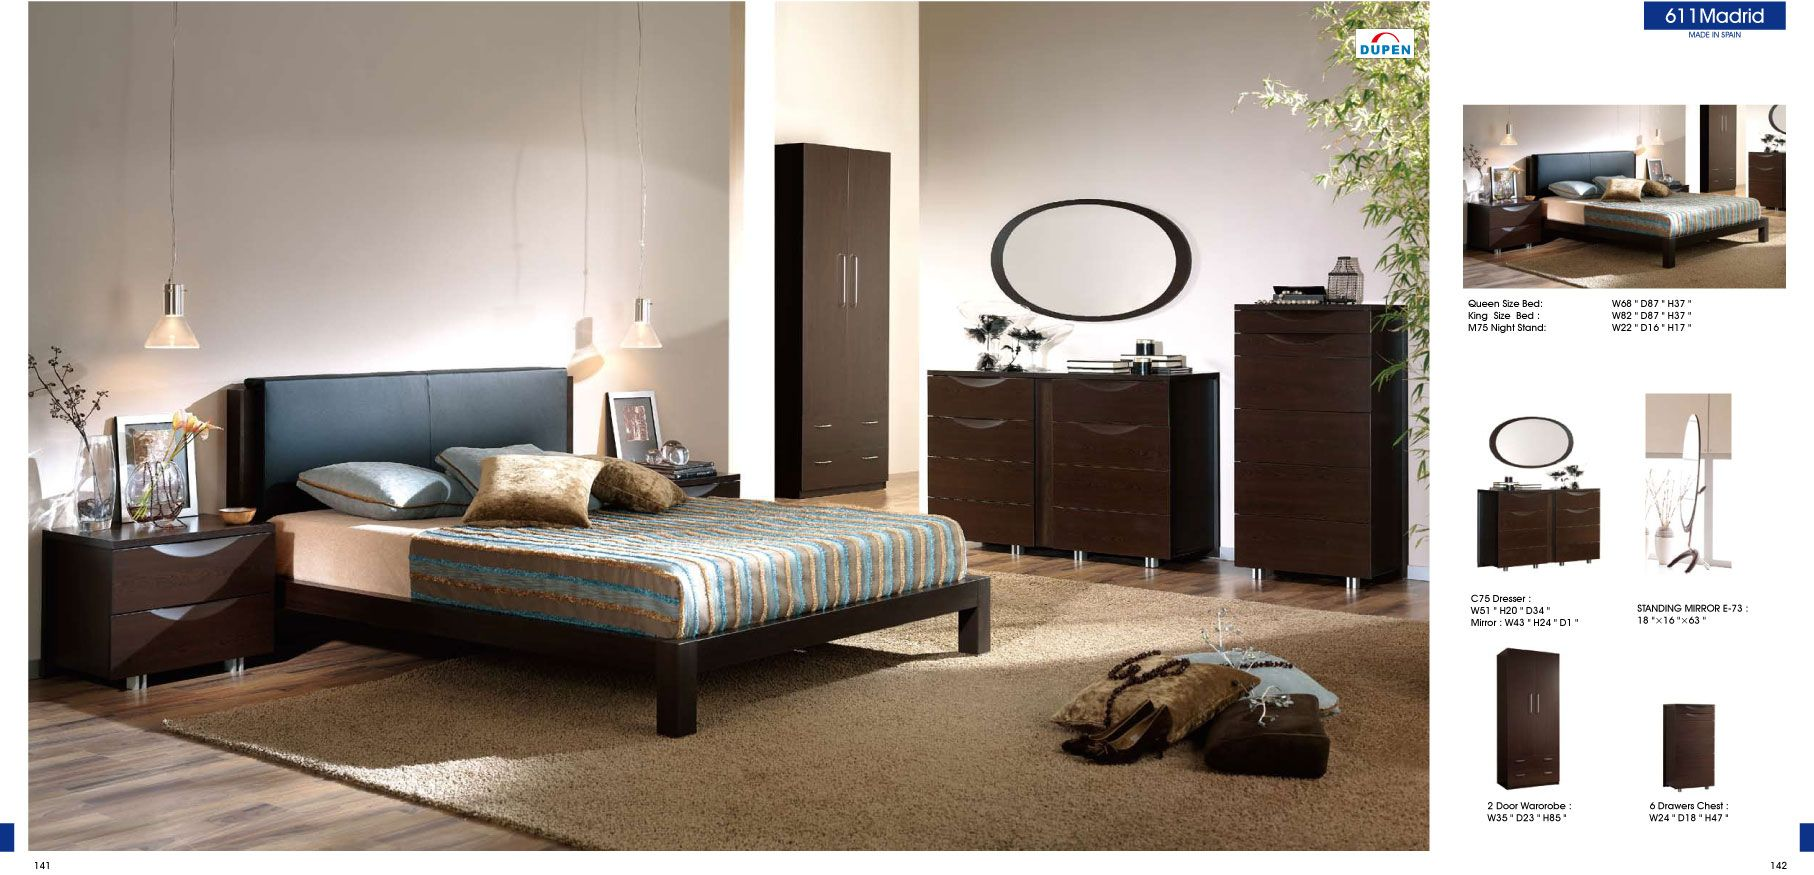 Contemporary Bedroom Furniture Designs Custom Bedroom Furniture Modern Bedrooms 611 Madrid M75 C75  Bedrooms Design Ideas